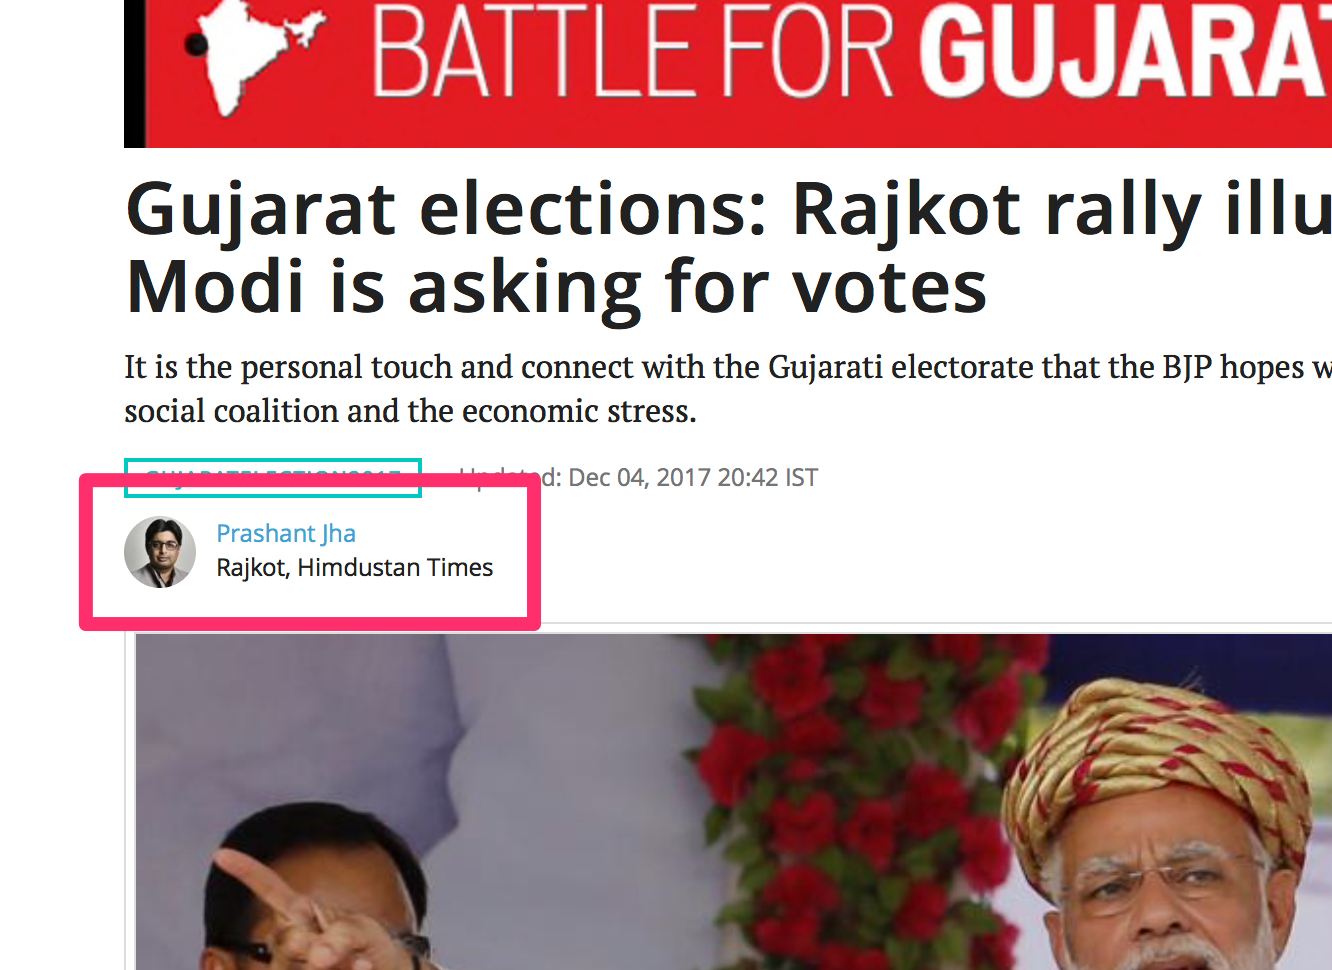 Gujarat_elections__Rajkot_rally_illustrates_how_PM_Modi_is_asking_for_votes___assembly-elections_Gujarat-2017___Hindustan_Times.png